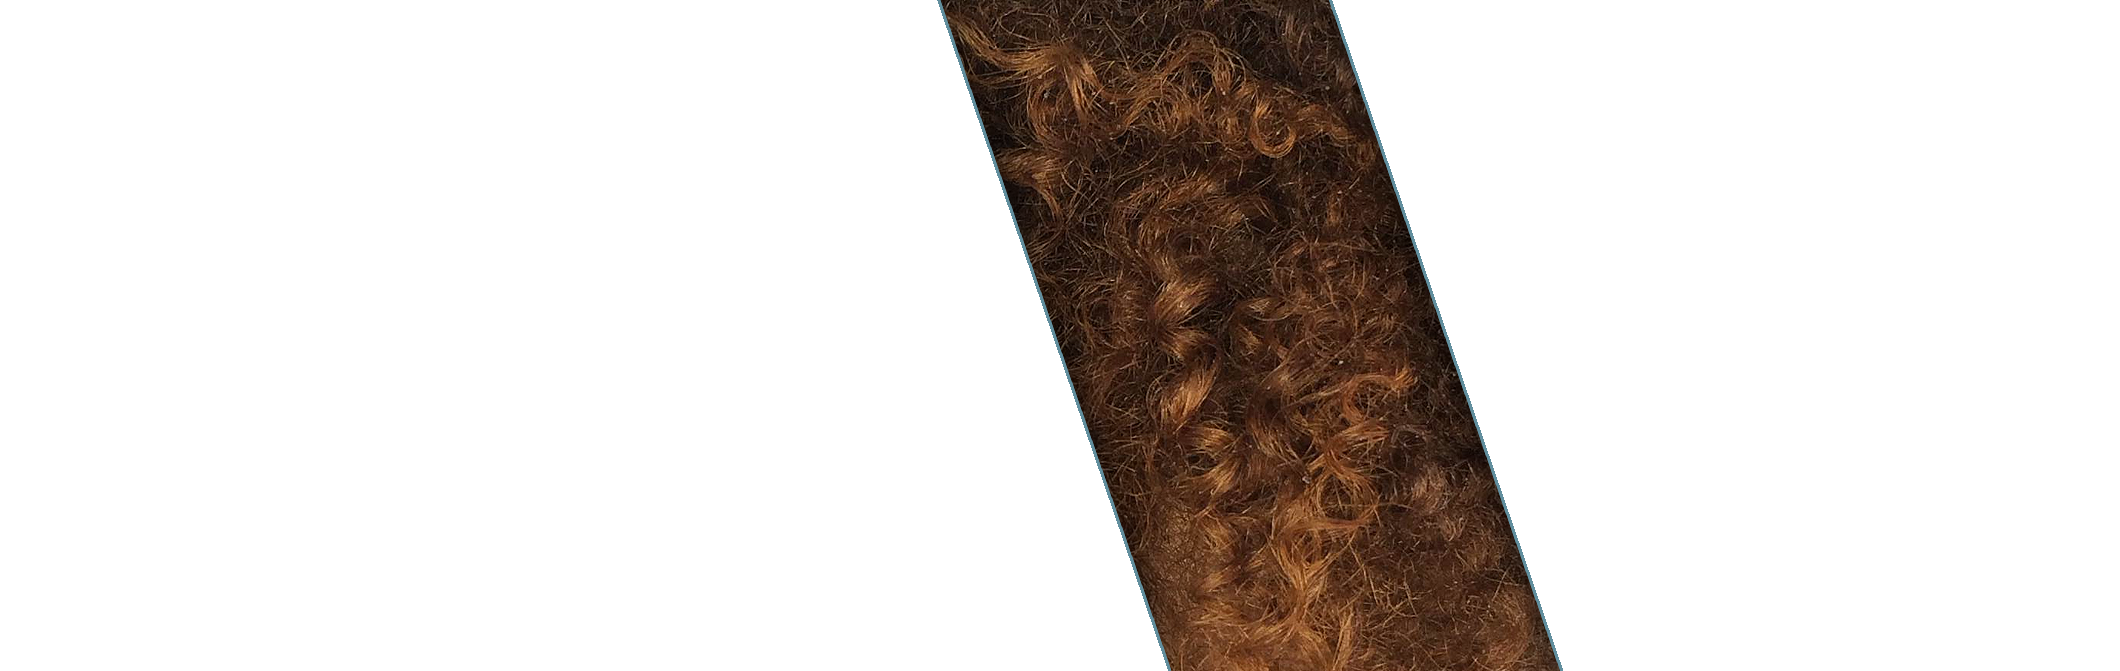 Dreads hair png. Naturally trendy salon your